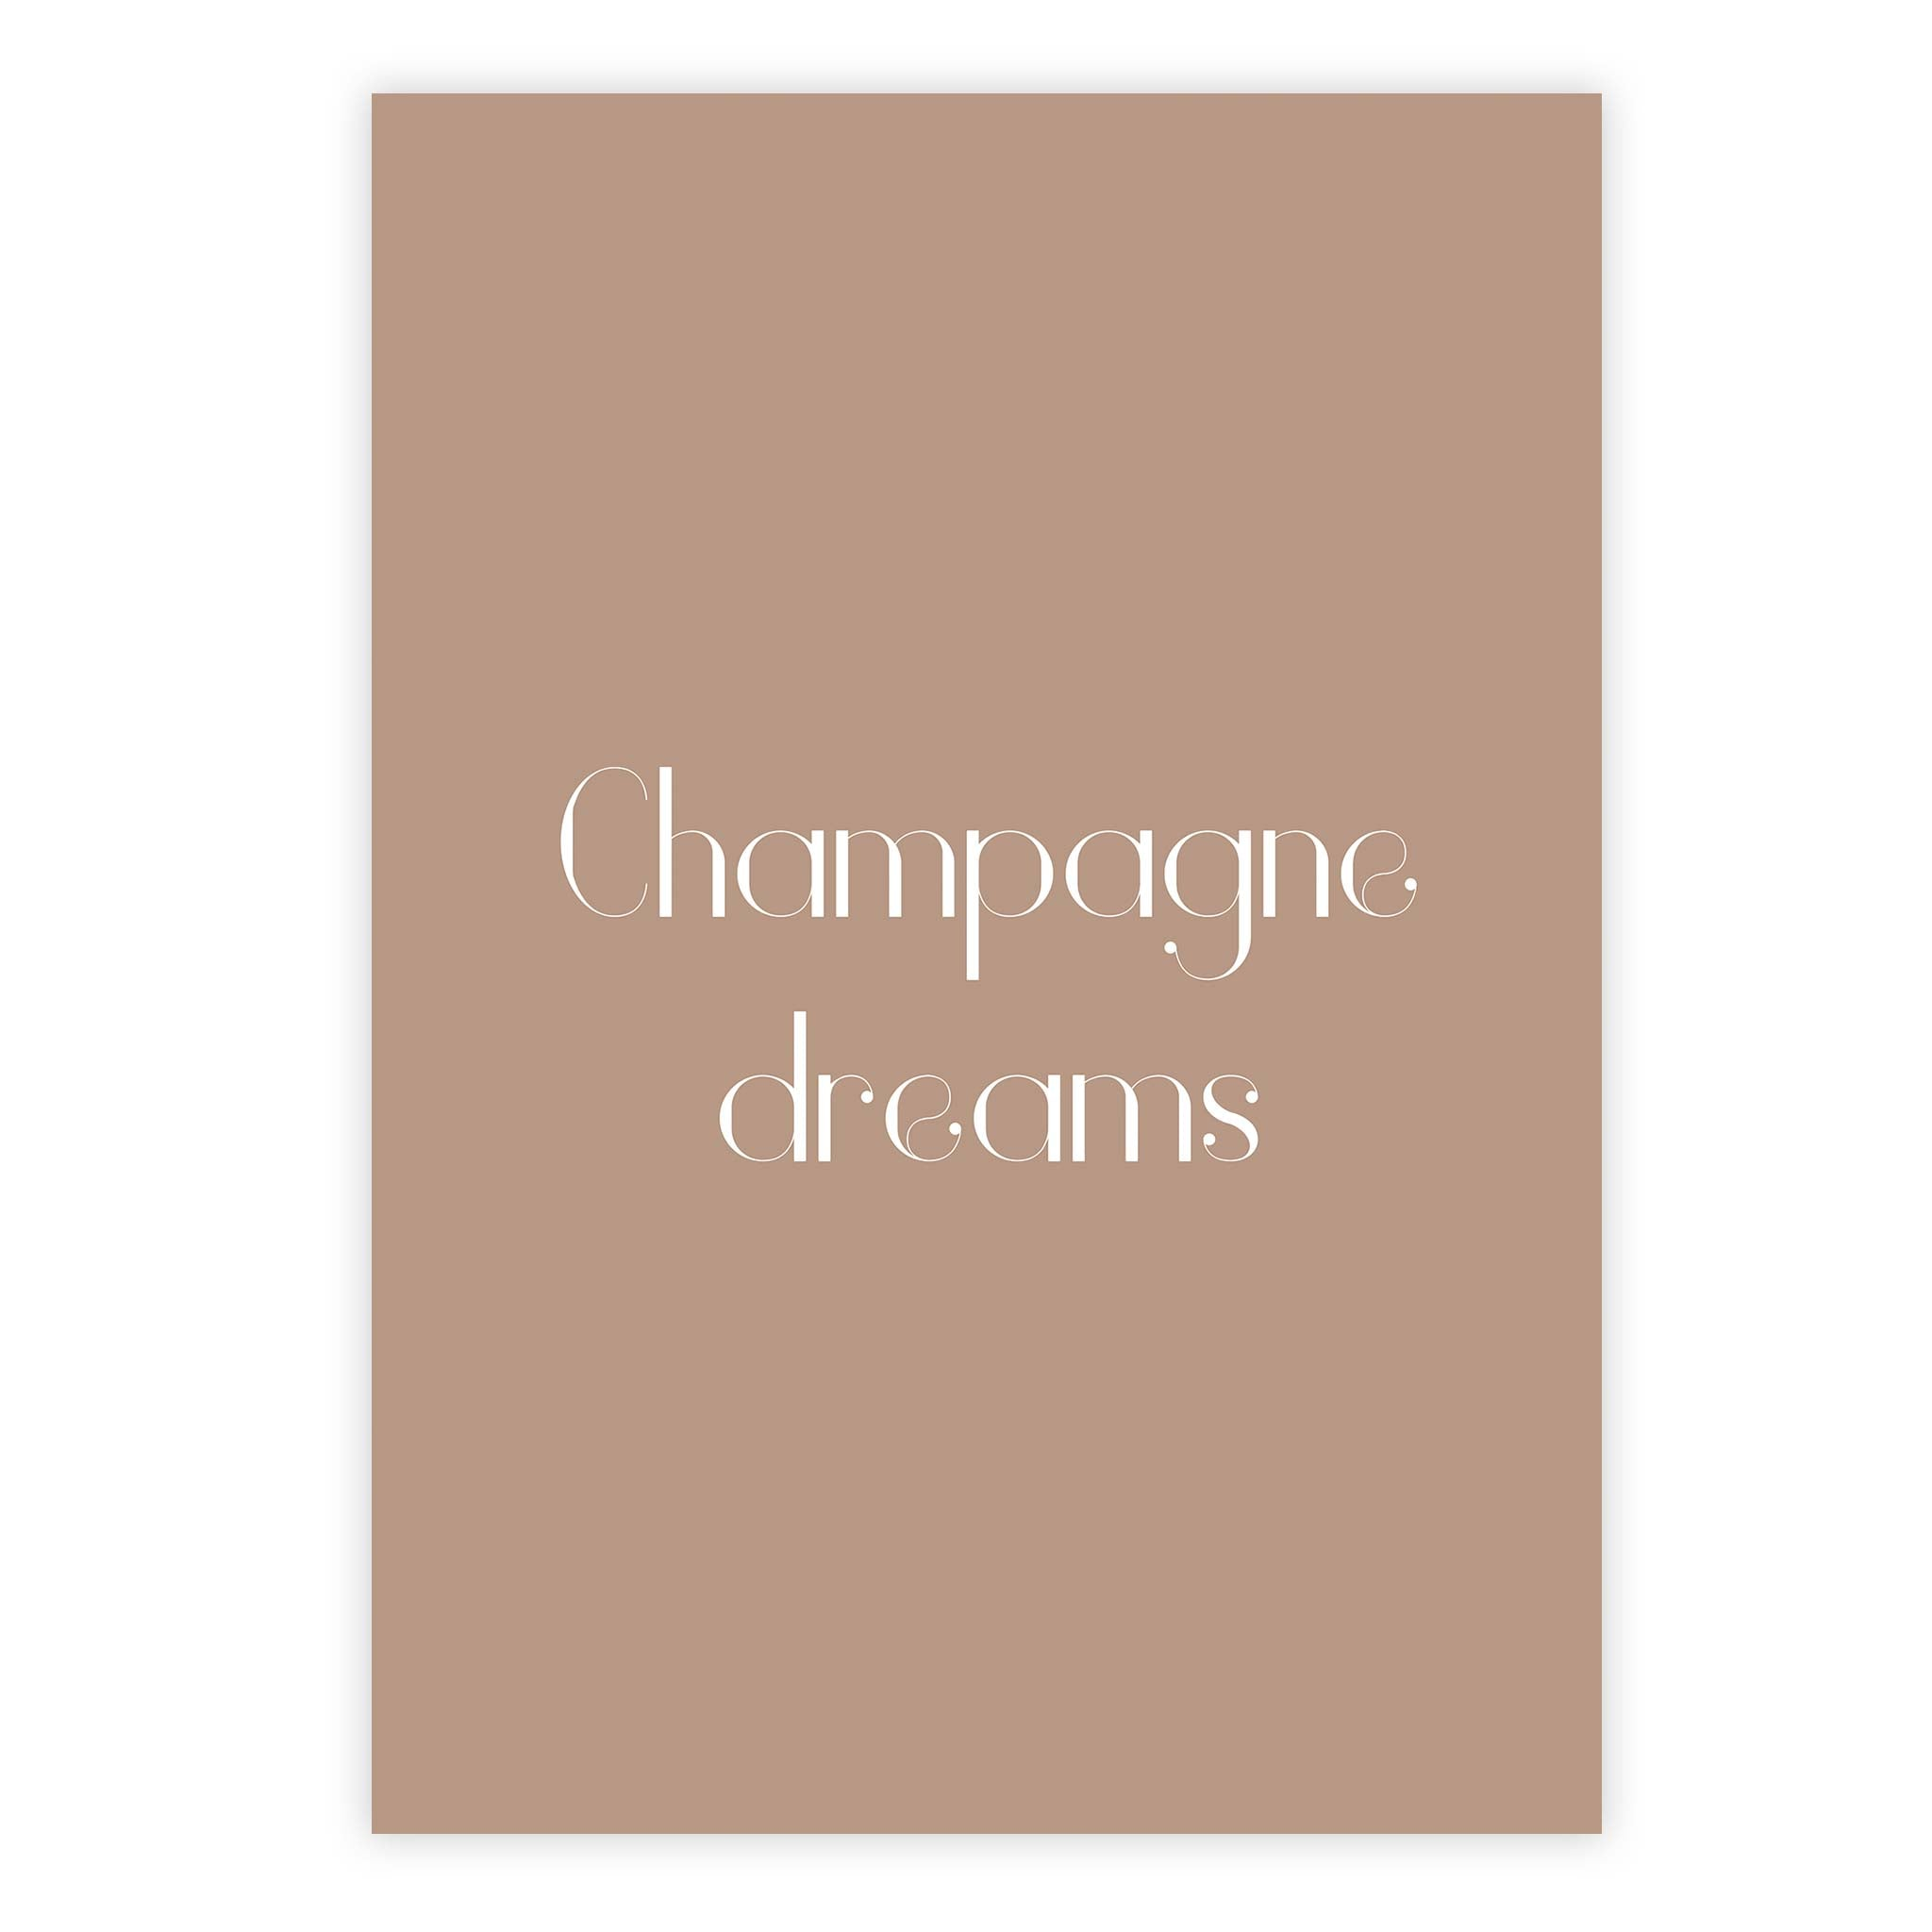 Champagne dreams